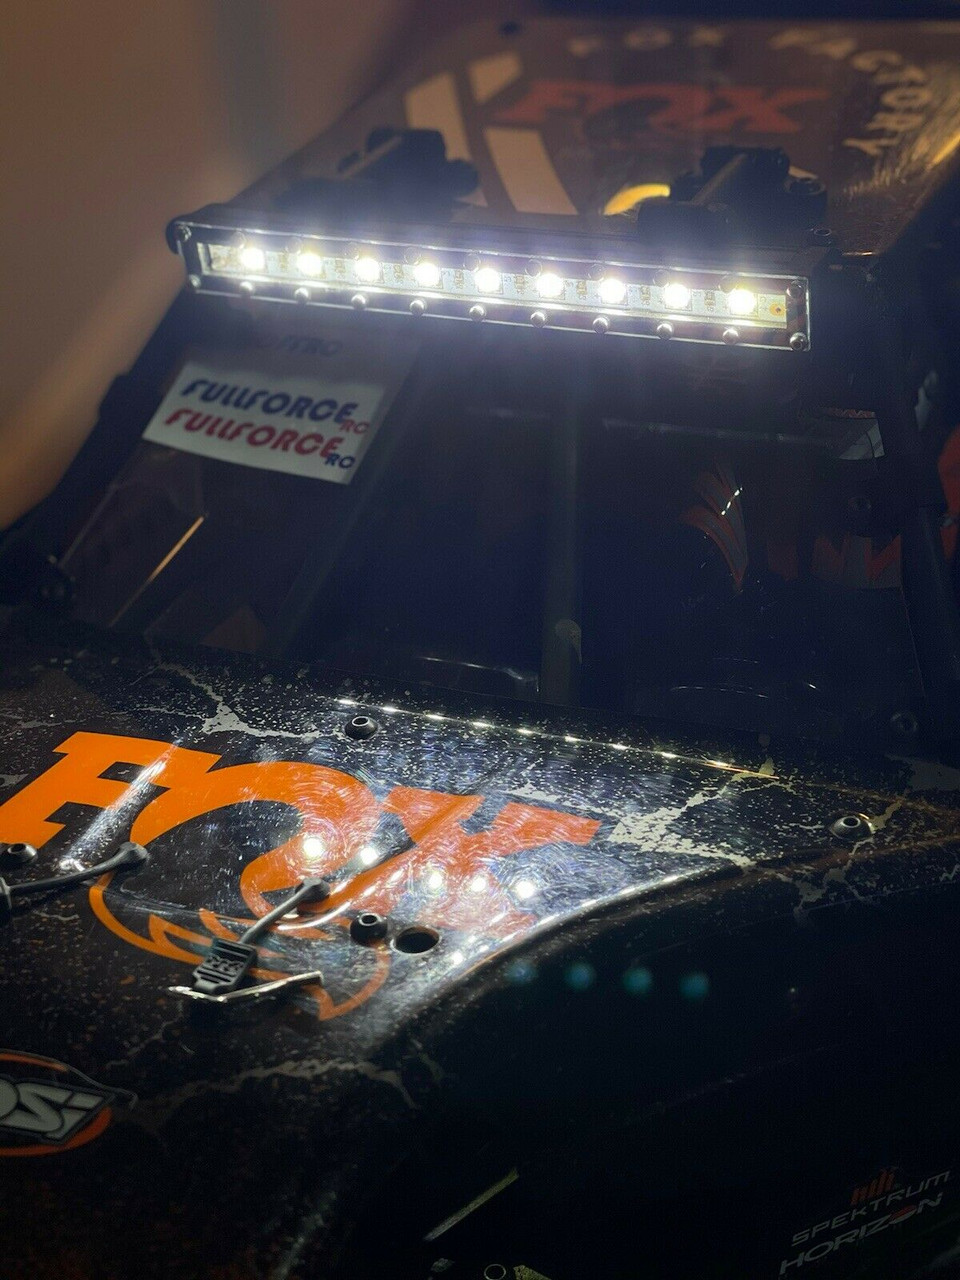 Shown here lit up on our first customers ride! Protects the LED strip and keeps the dirt and debris from getting crammed in there.